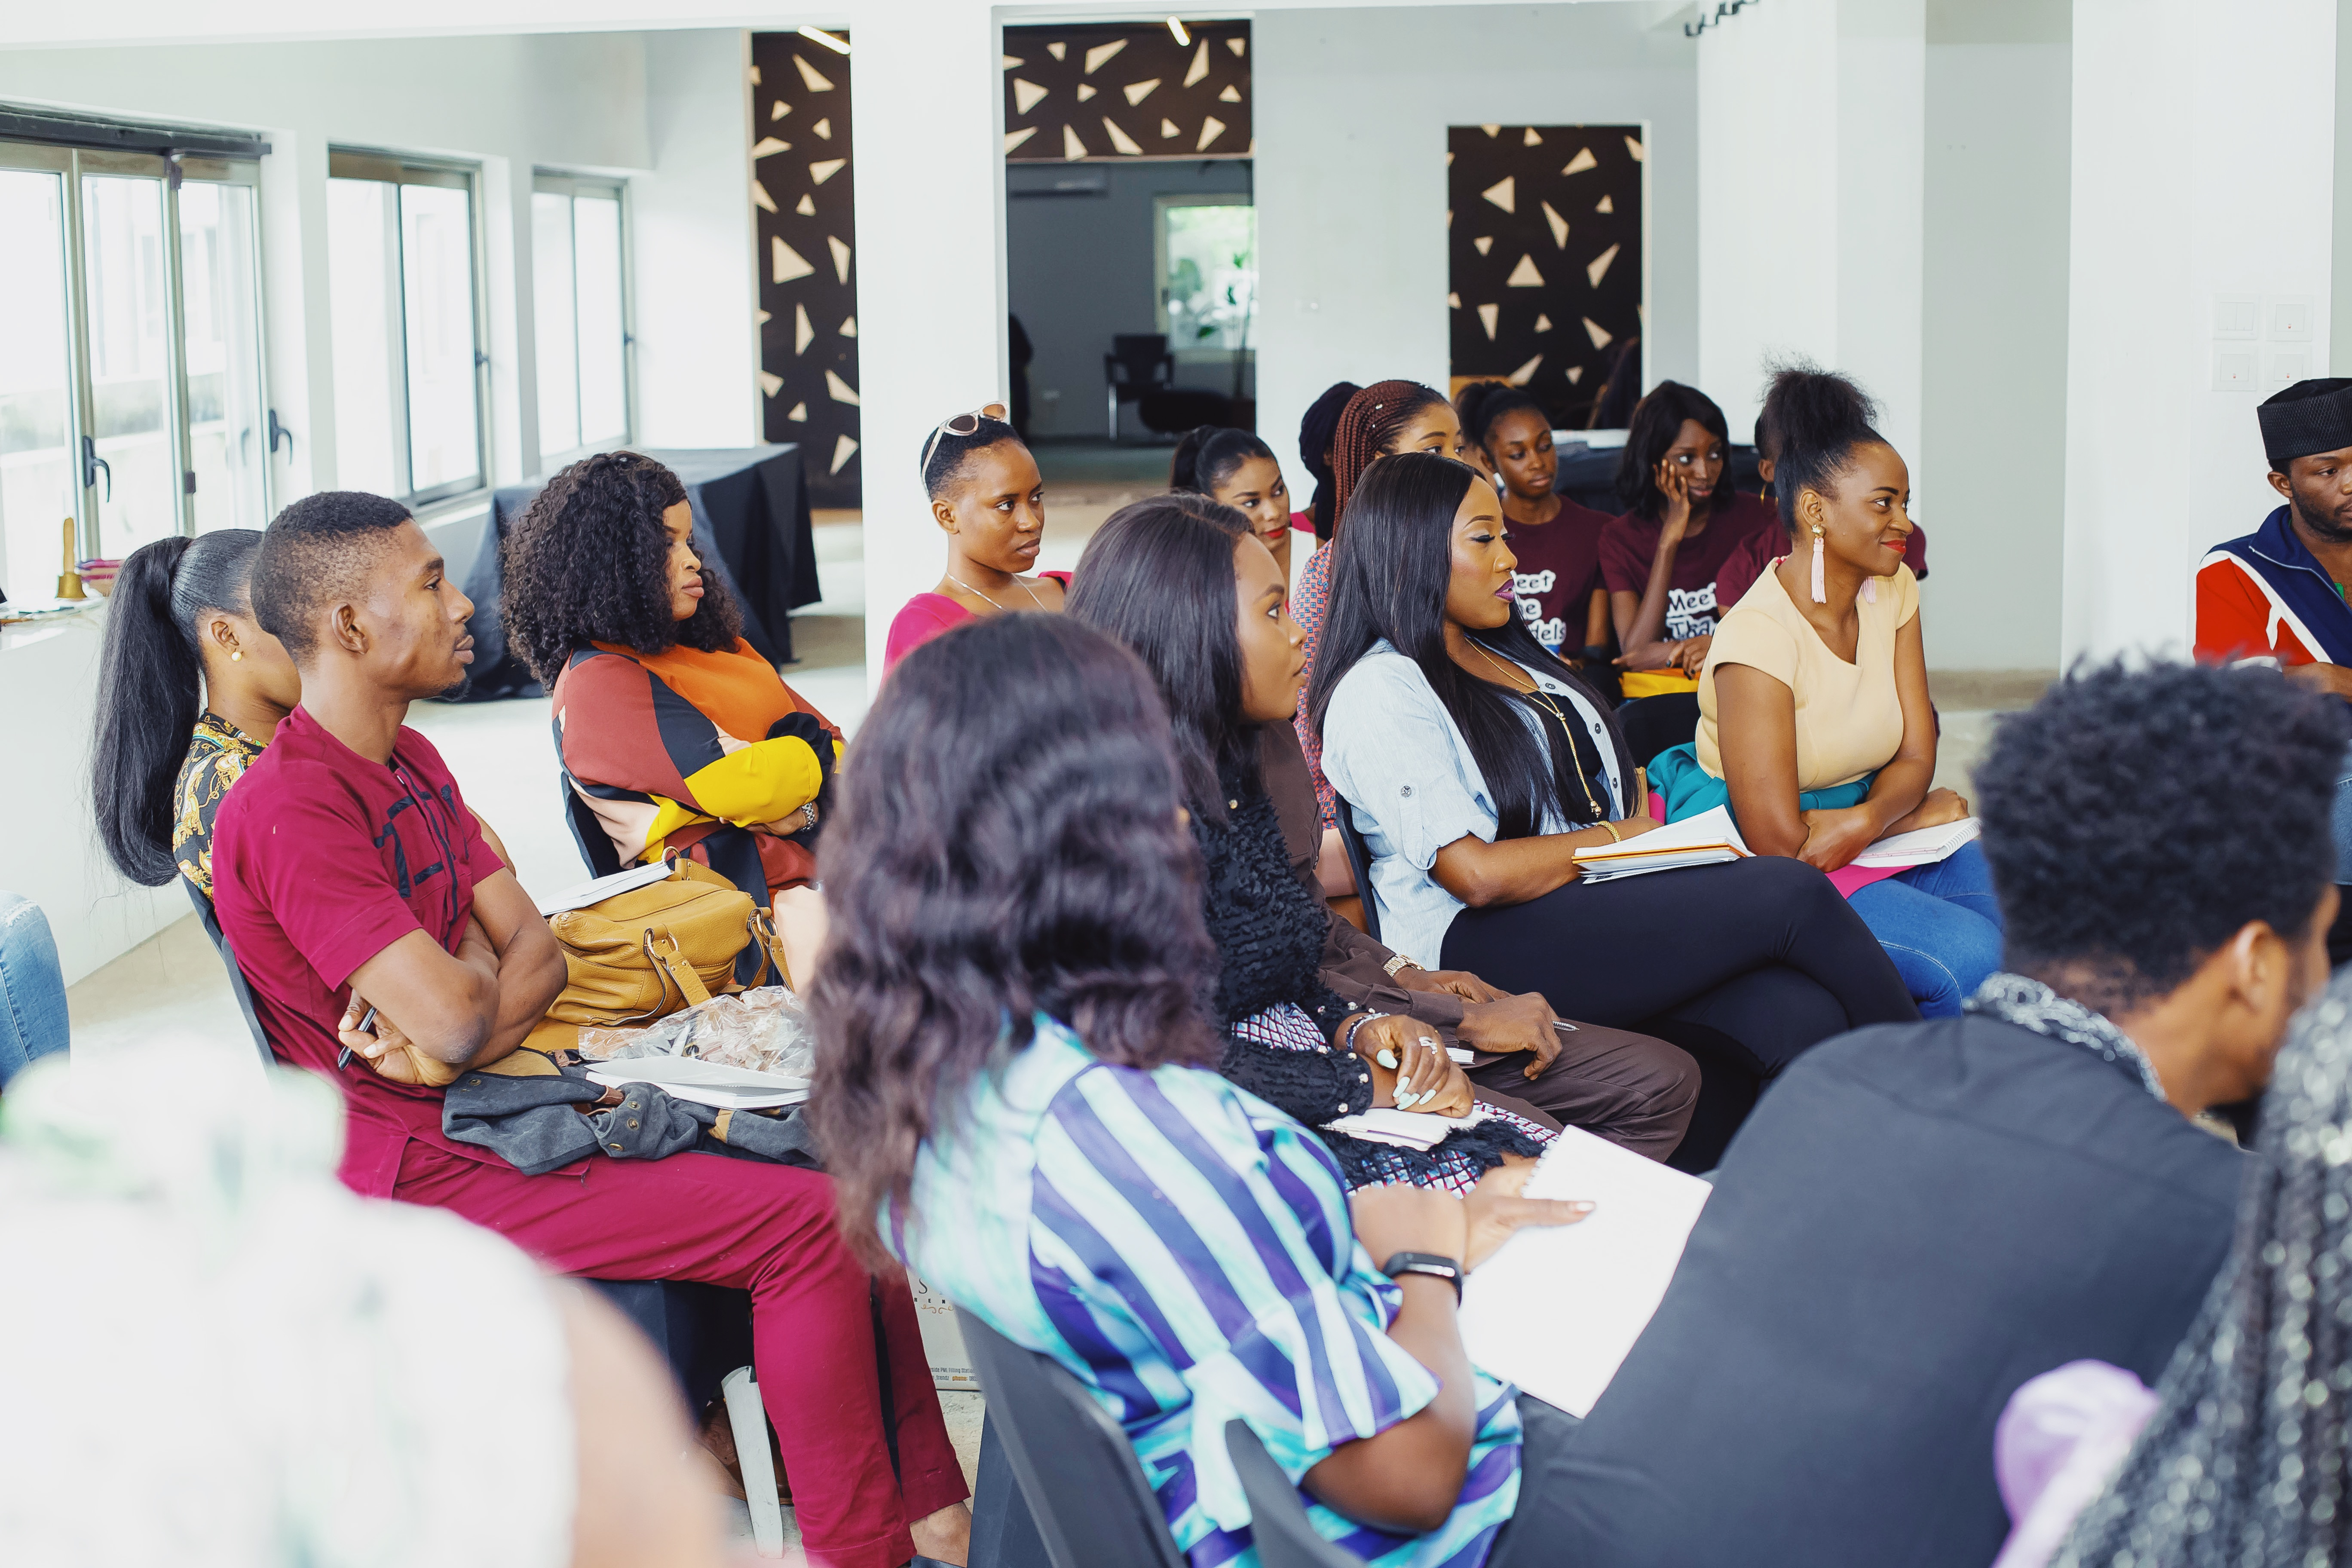 All the Scoop from the 2nd Creative Direction + Fashion Styling Masterclass!